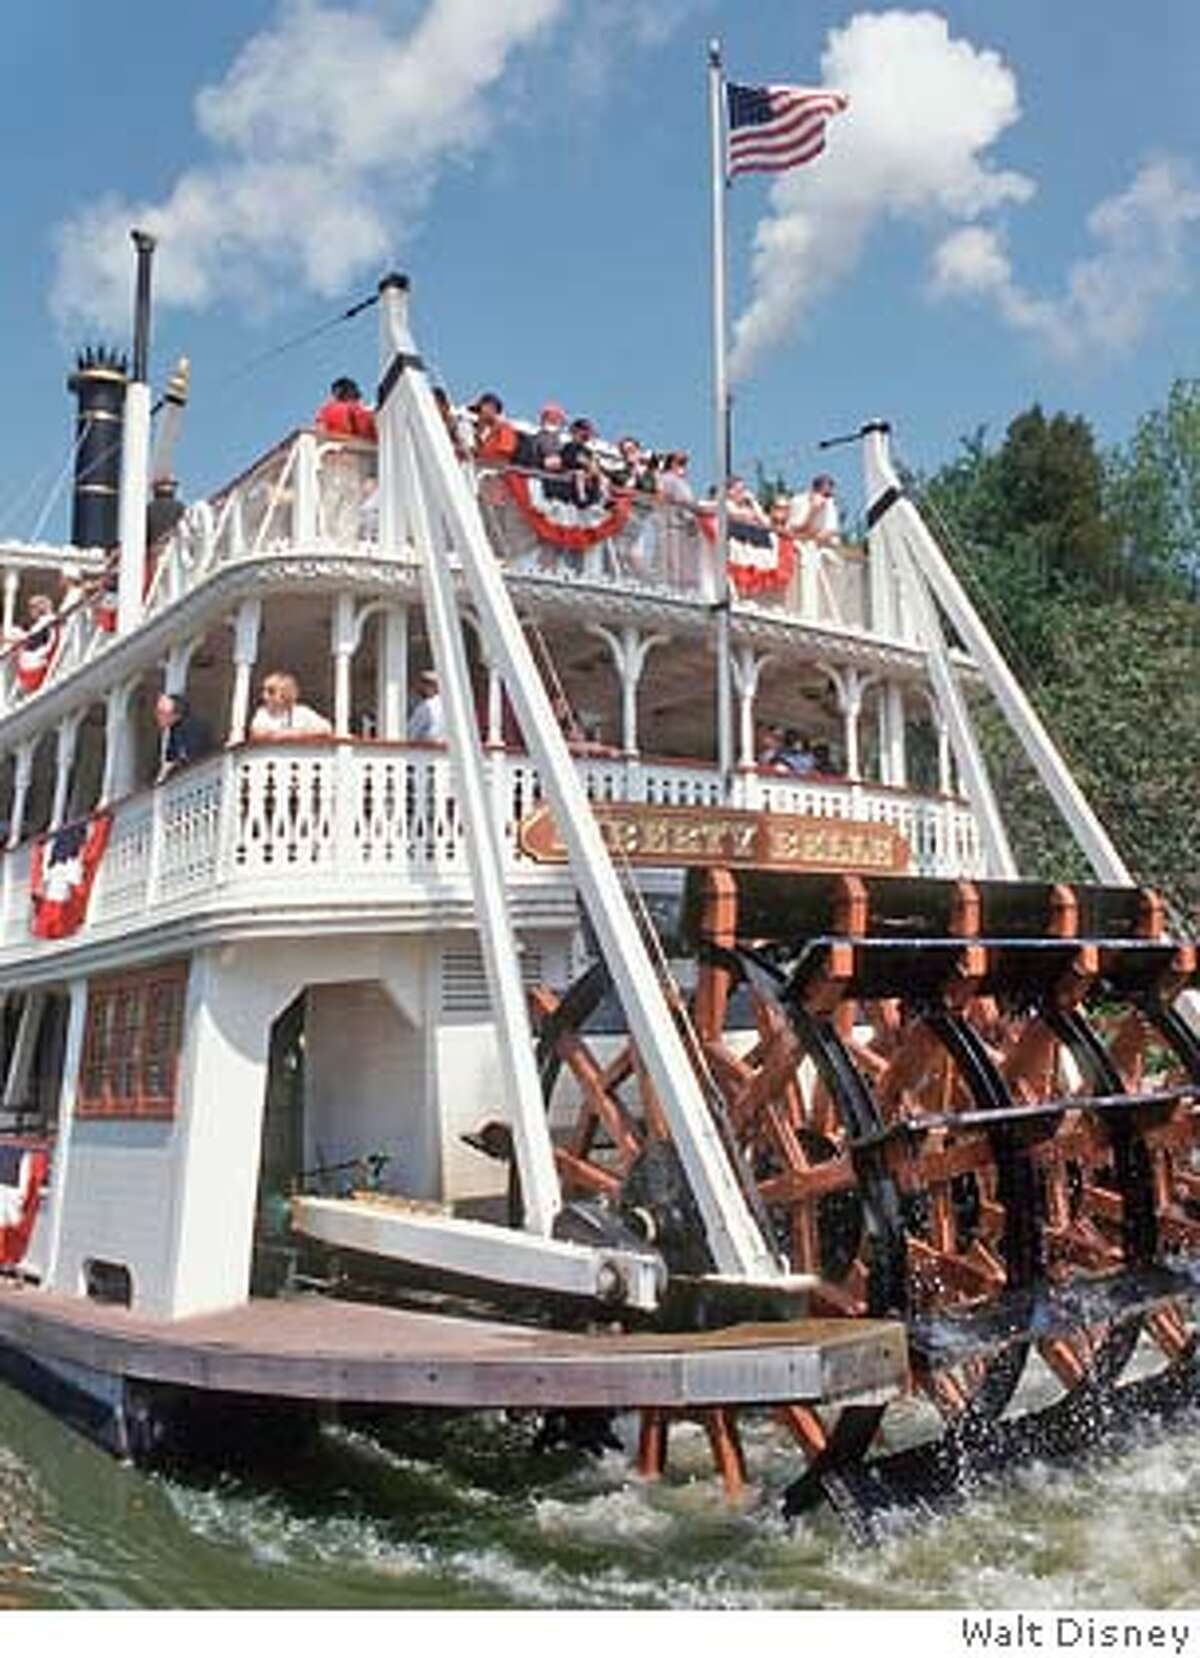 TRAVEL DISNEY -- STEAMIN' AROUND THE BEND - The Liberty Belle Riverboat makes it's way along the Rivers of America in Frontierland, in the Magic Kingdom at Walt Disney World Resort in Lake Buena Vista, Fla. The Magic Kingdom has seven themed lands for guest to enjoy. J3-53